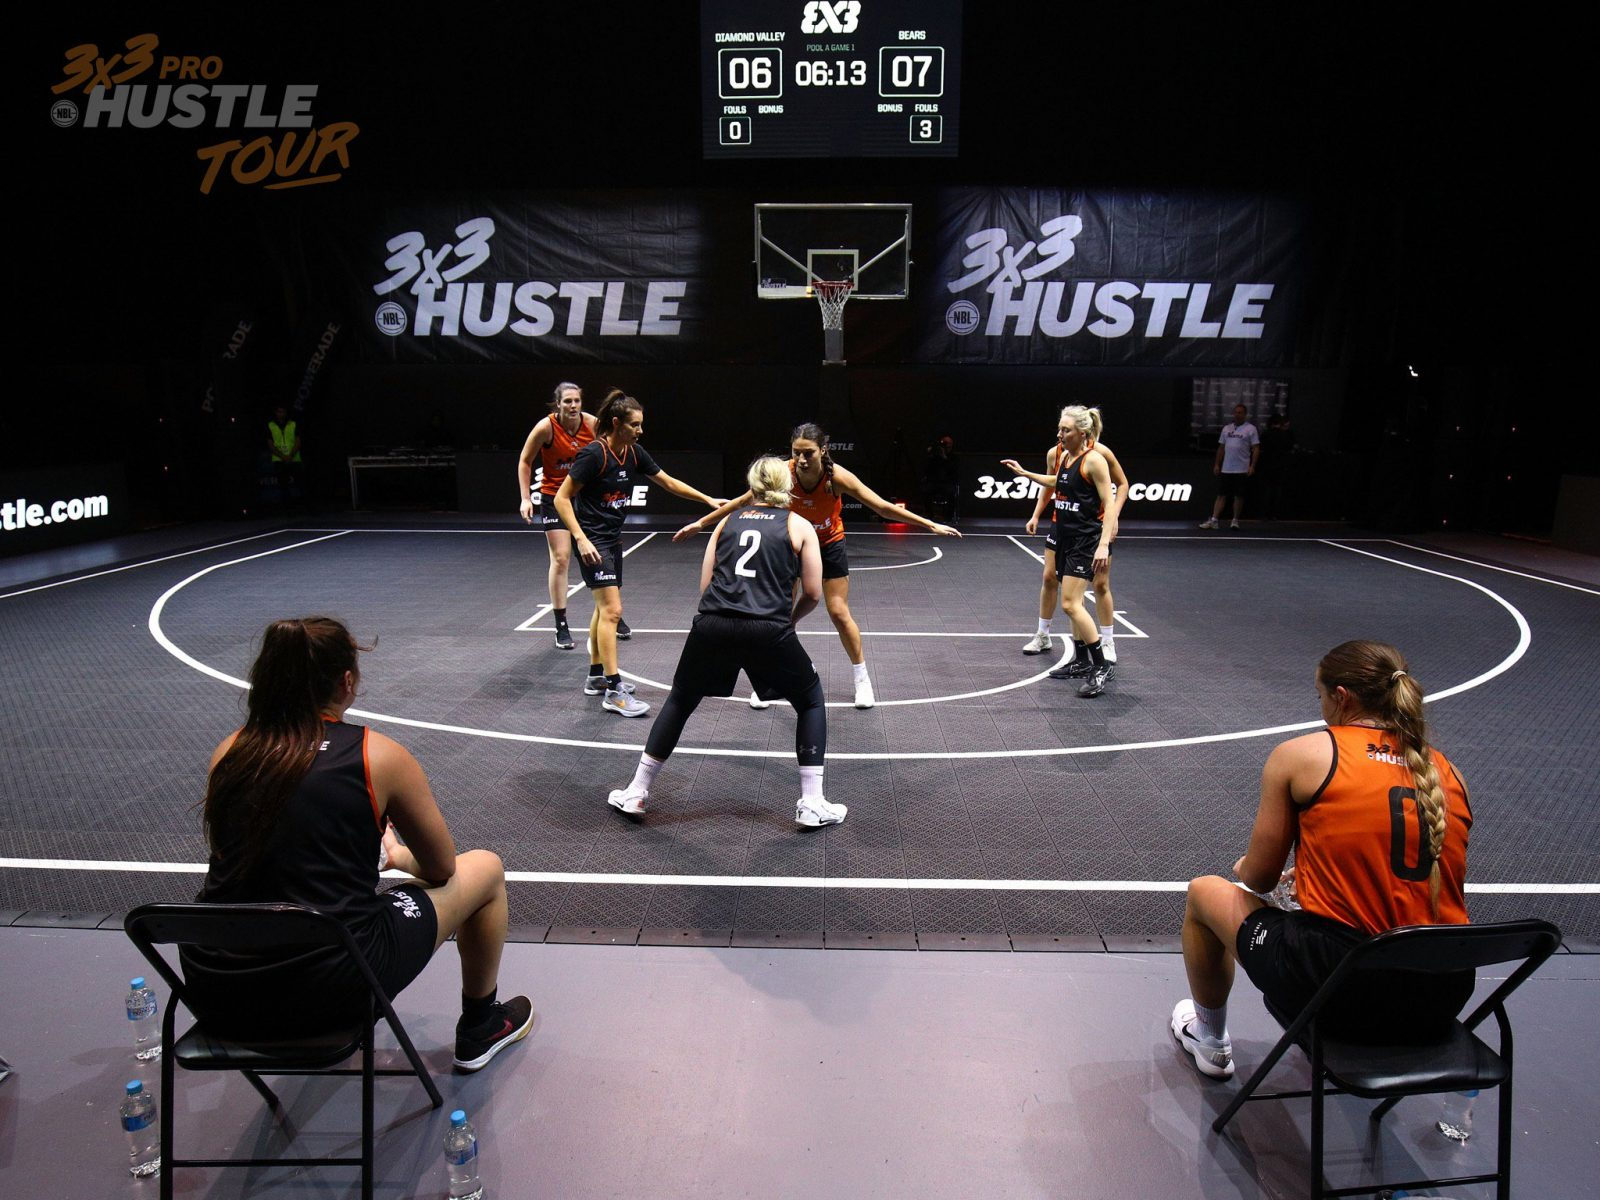 3x3 Pro Hustle players square up on the Hustle court